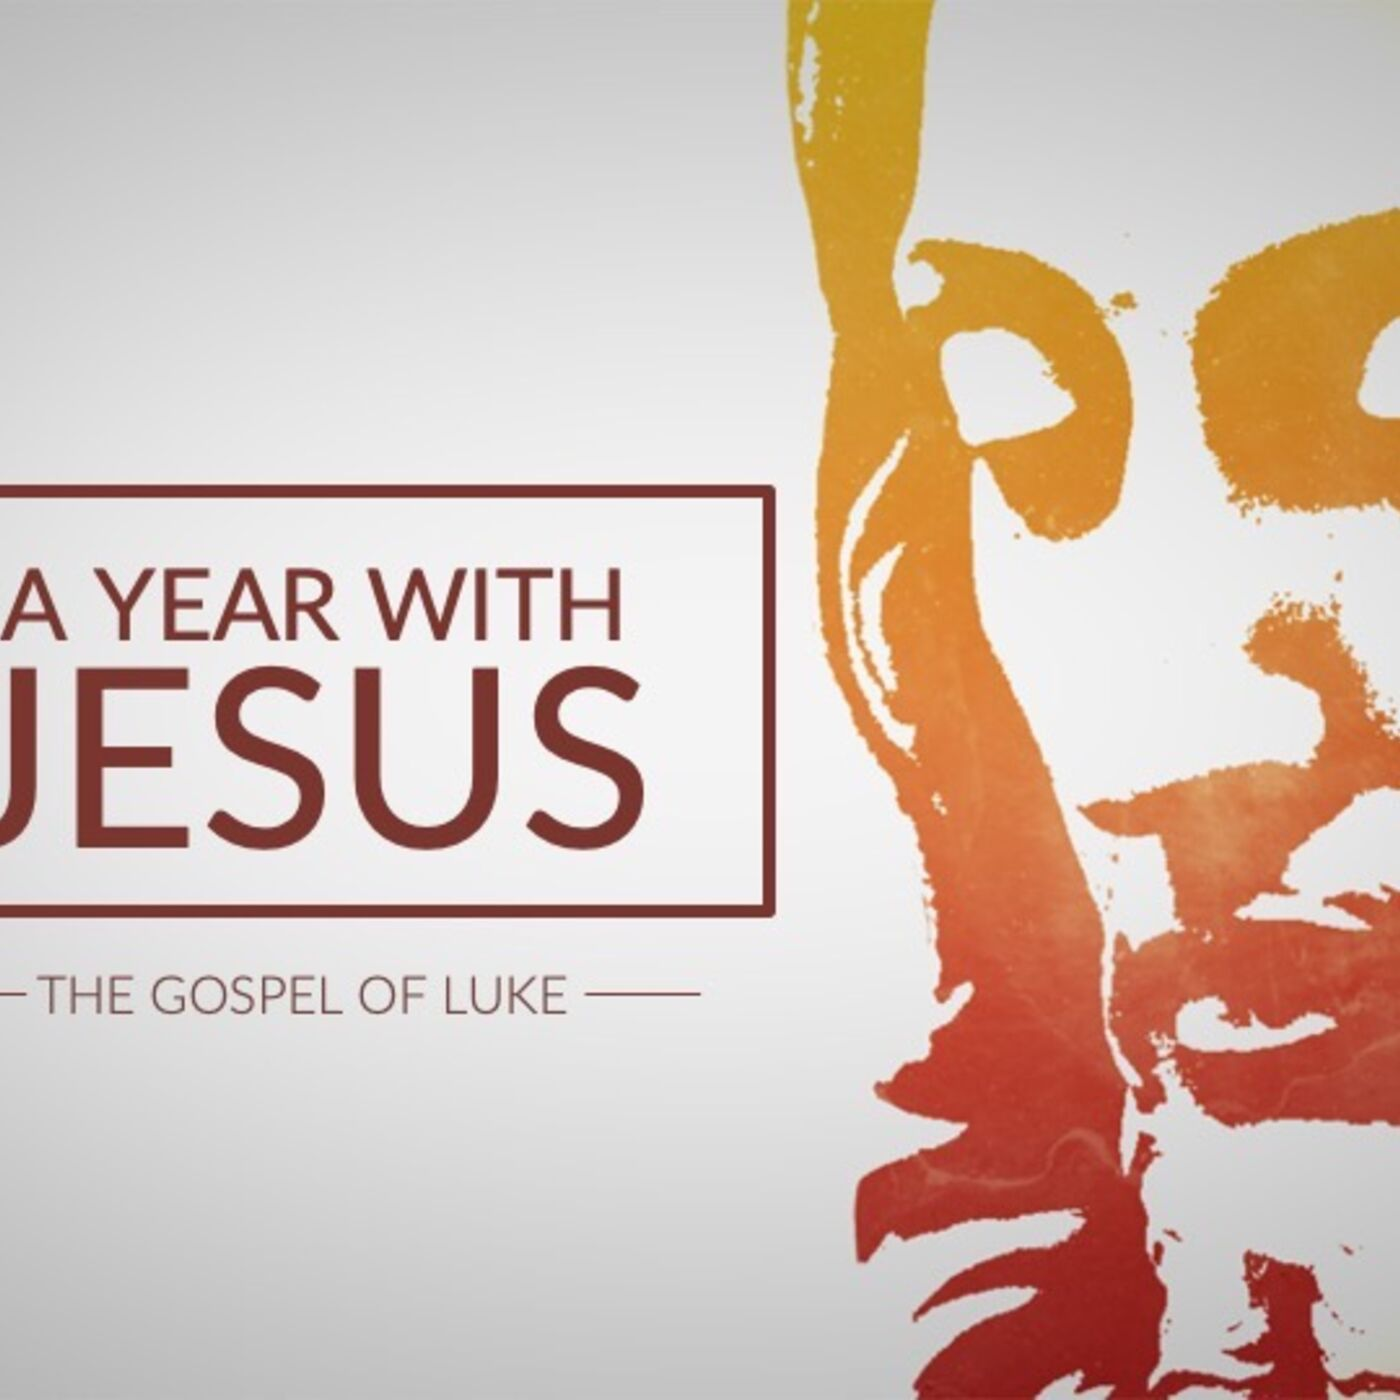 A Year With Jesus: Where Do Your Loyalties Lie? (Luke 12:35-59)